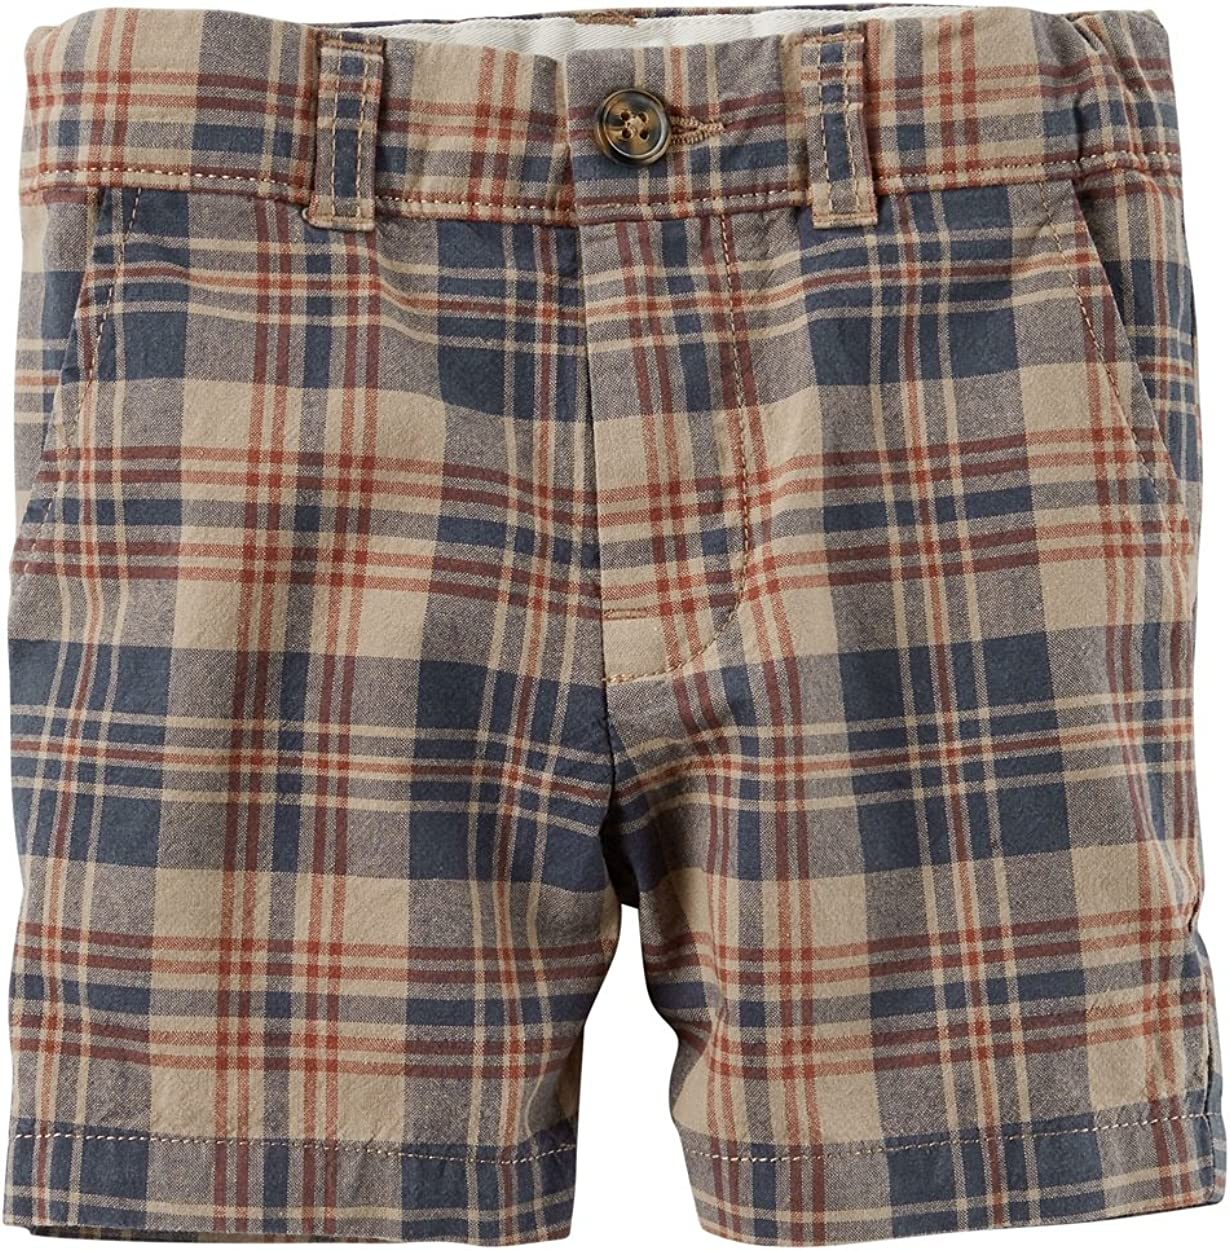 Carters Baby Boys Plaid Flat-Front Shorts 3 Months Brown